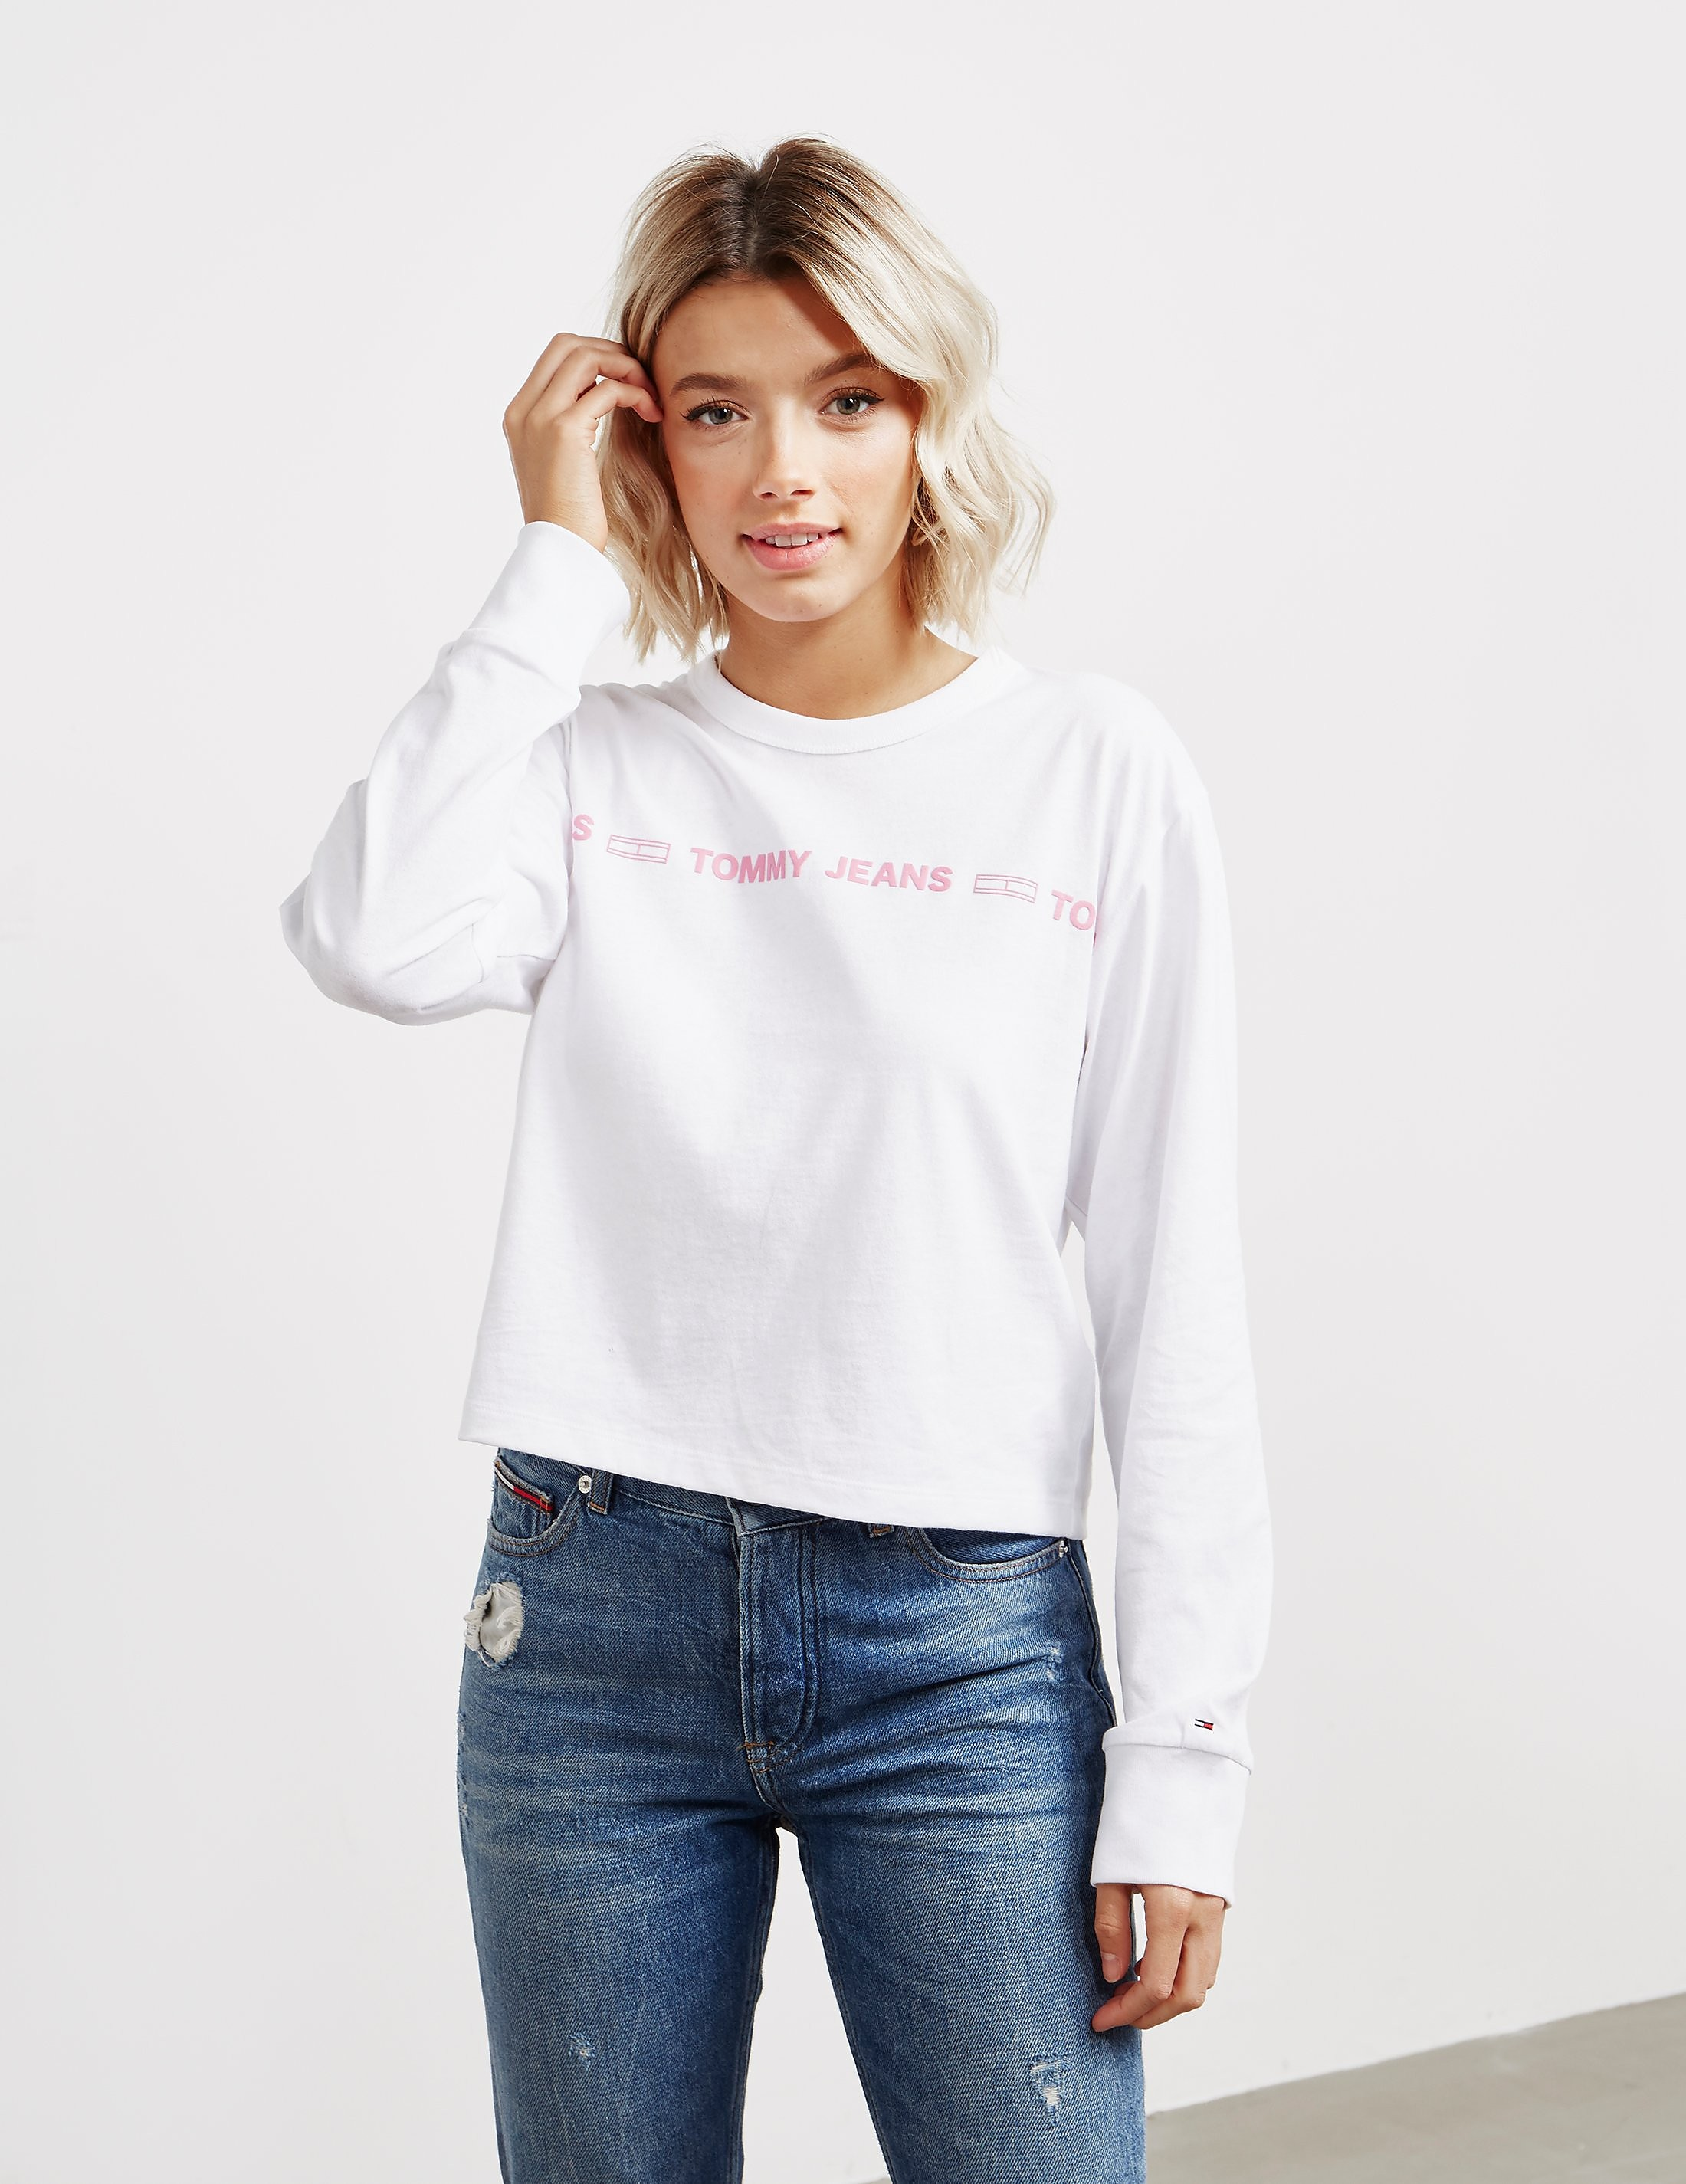 48f6bdc21 Womens Tommy Jeans Statement Long Sleeve T-Shirt White, White | £40.00 |  Port